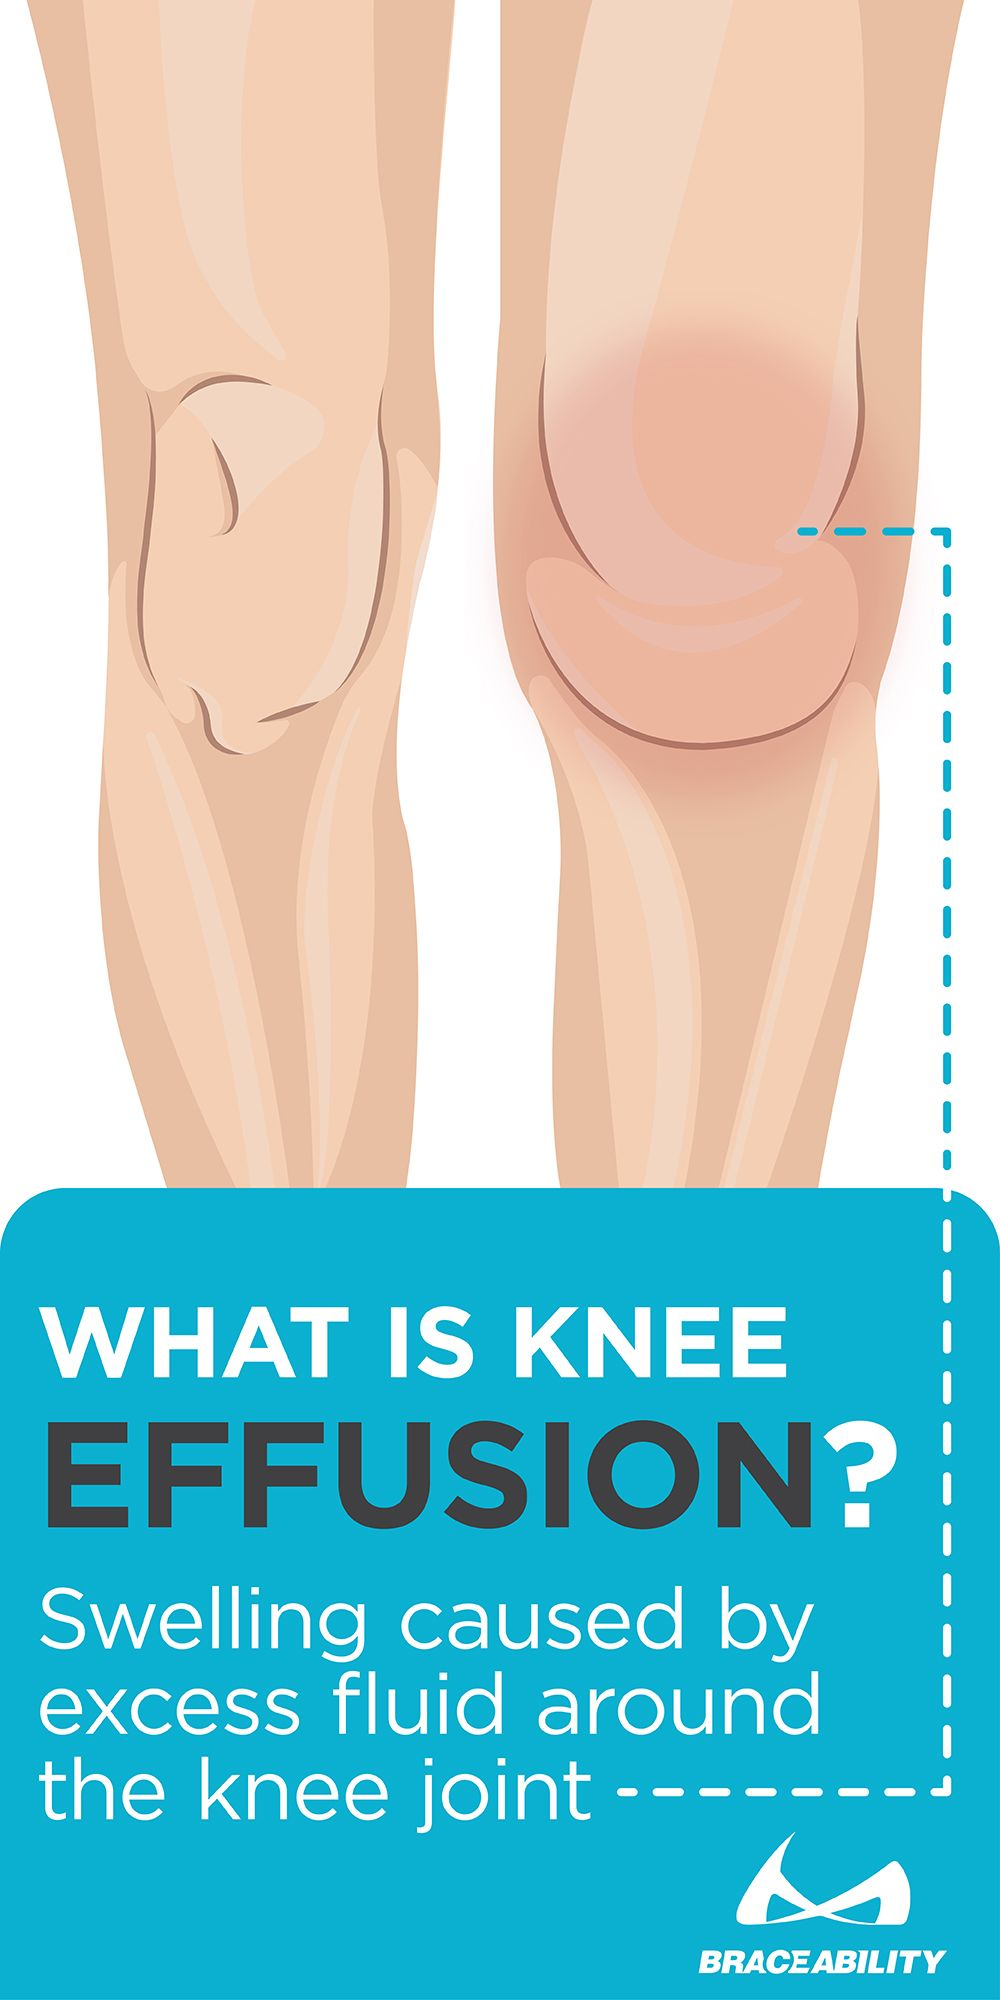 What is Knee Effusion?